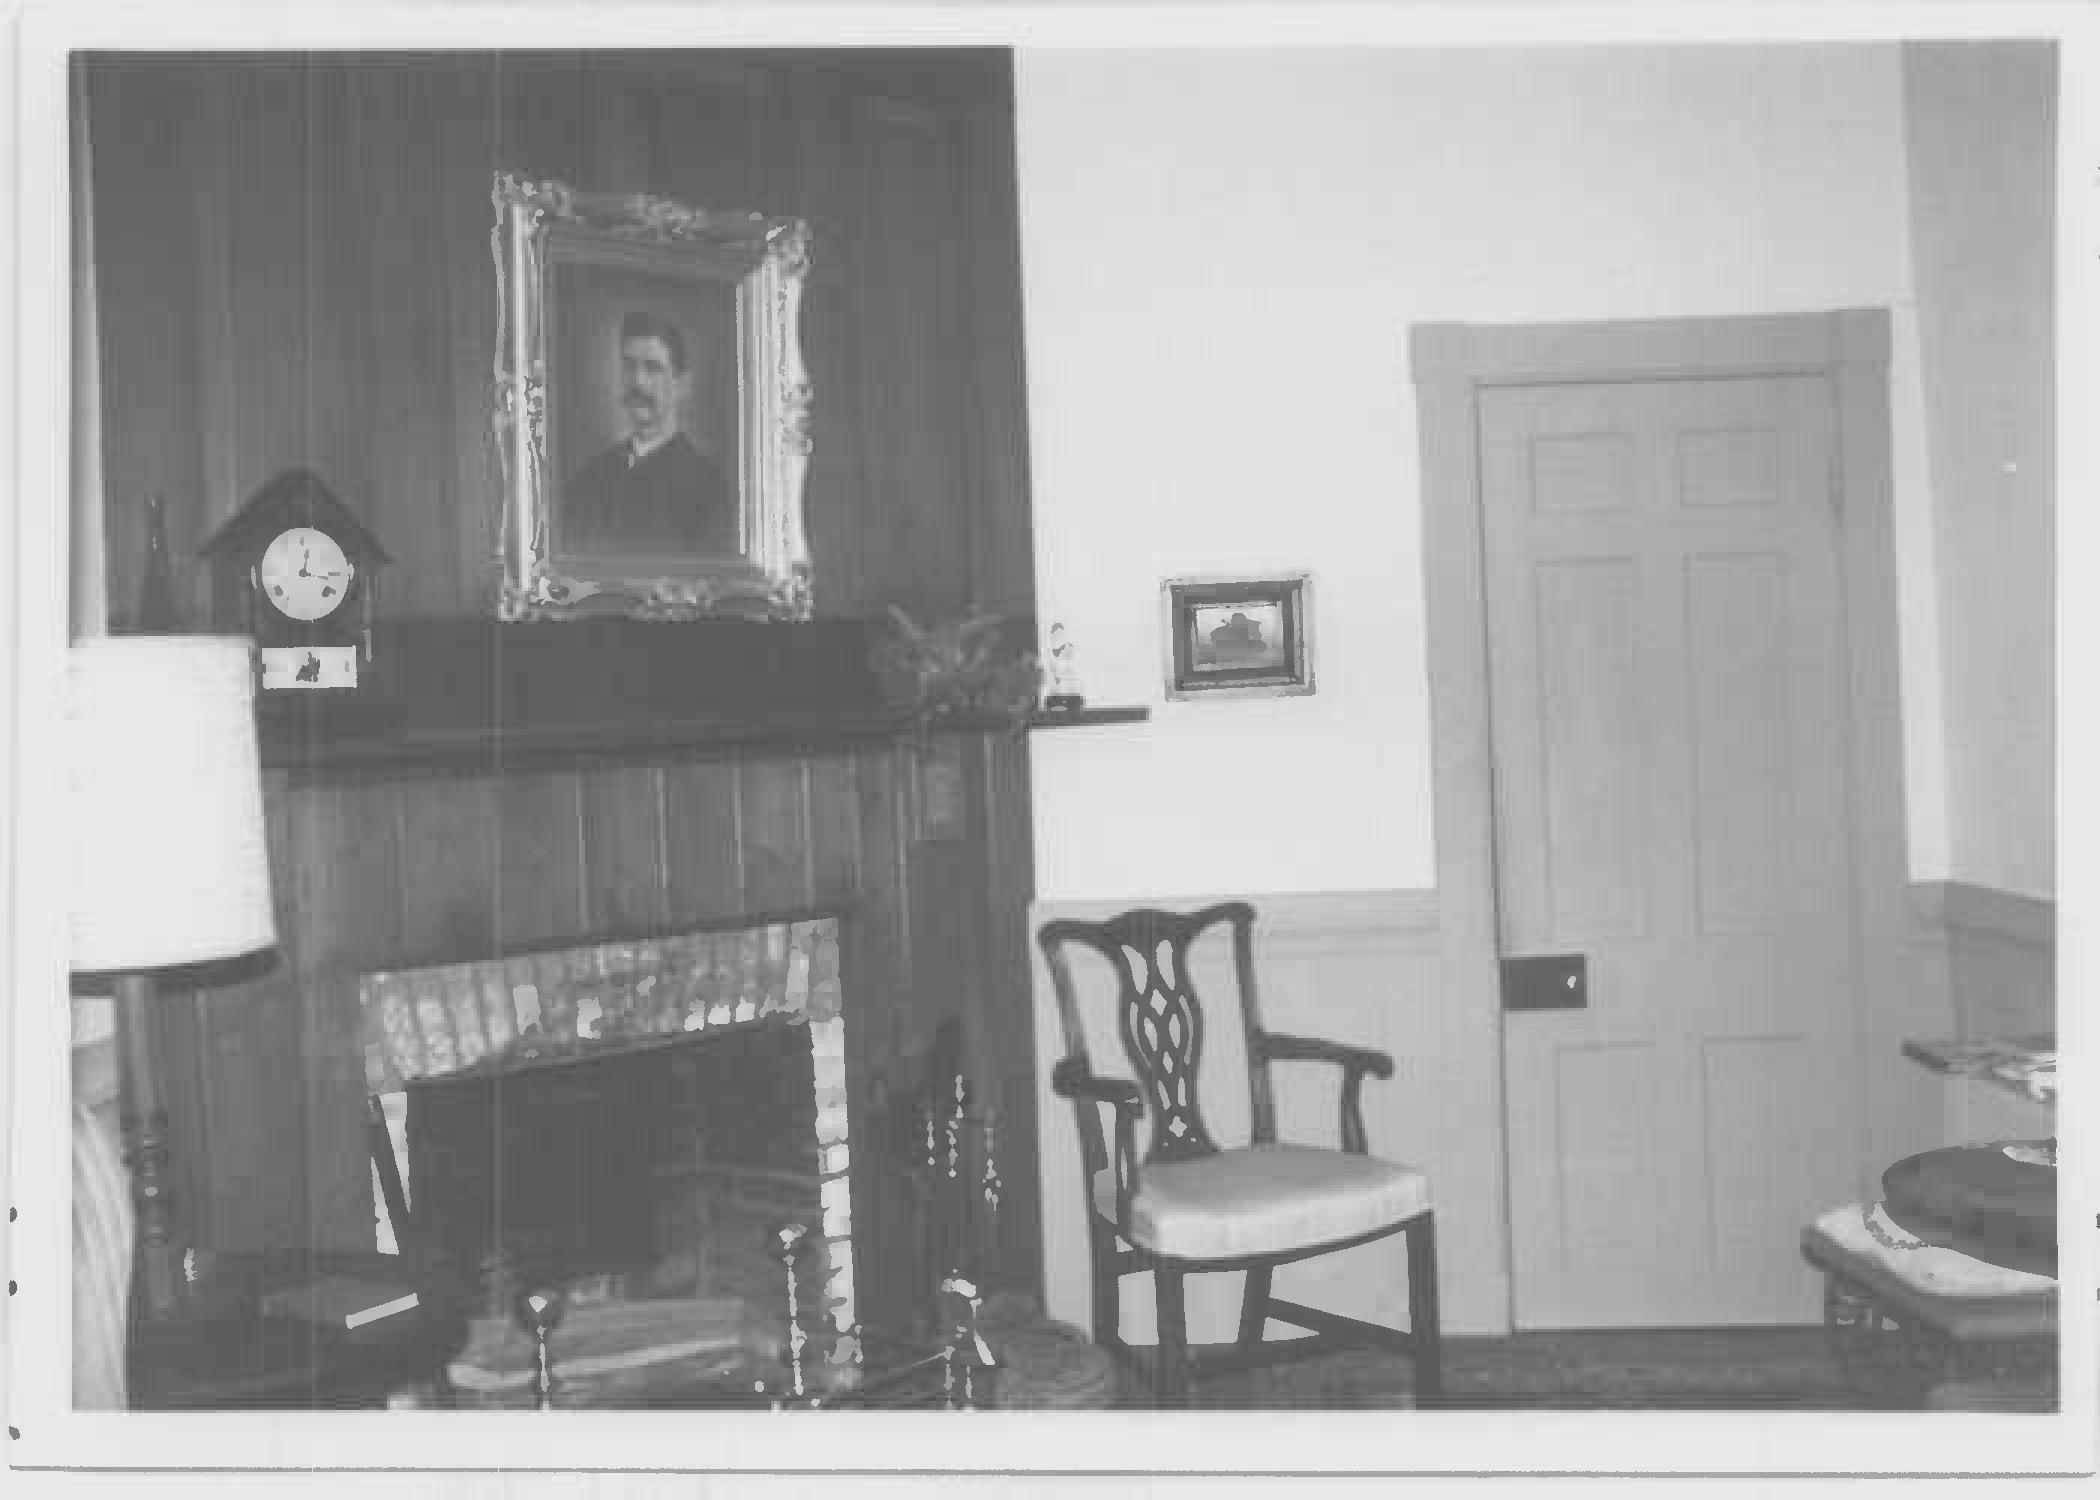 South room of main block, first floor, Whites Hall in Maryland